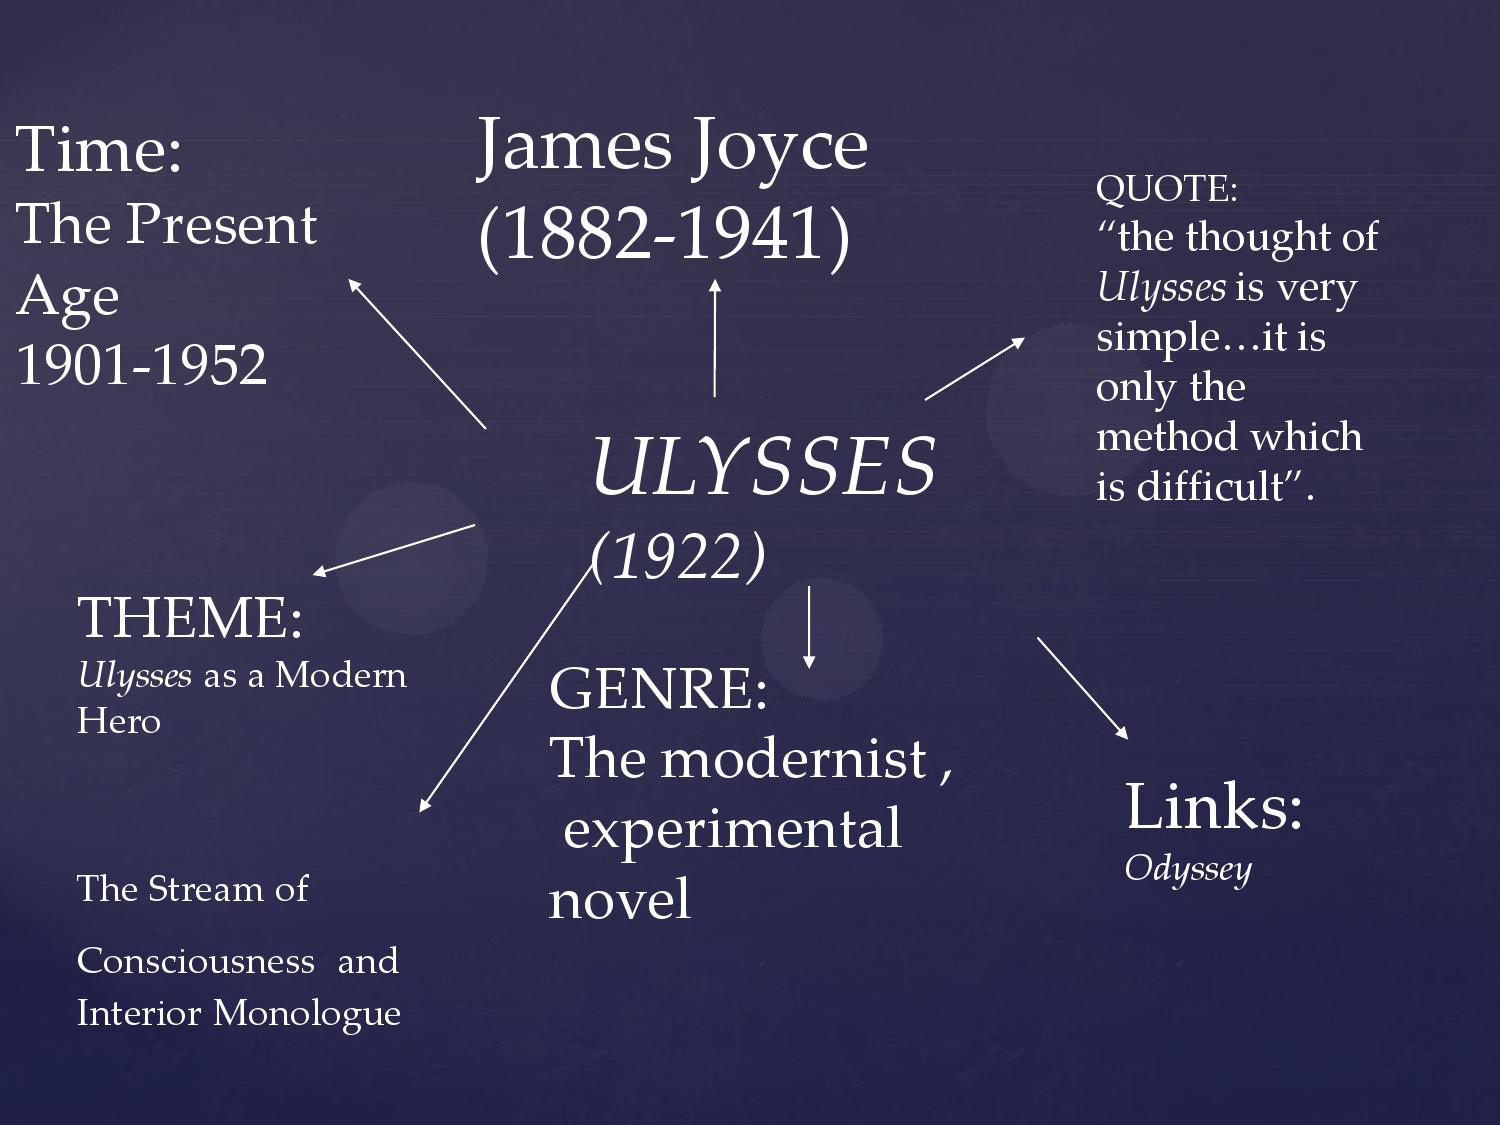 interior monologue in ulysses Monologue, an extended speech  interior monologue is a narrative technique meant  the molly bloom section at the end of james joyce's novel ulysses is the most.